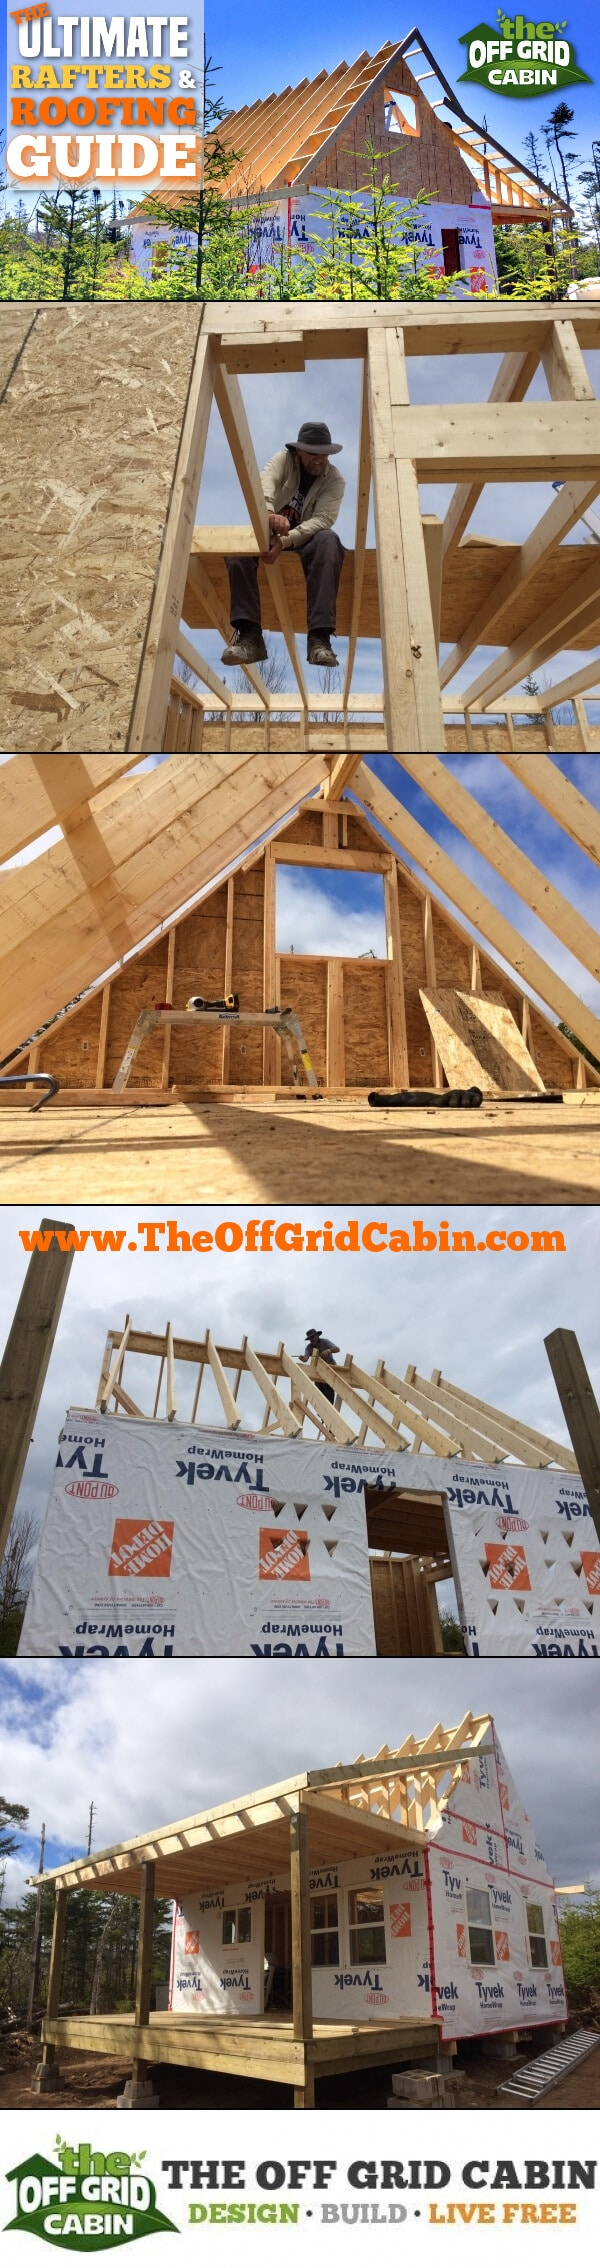 The Ultimate Roof and Rafter Guide For Cabins & Tiny Homes Pinterest Image